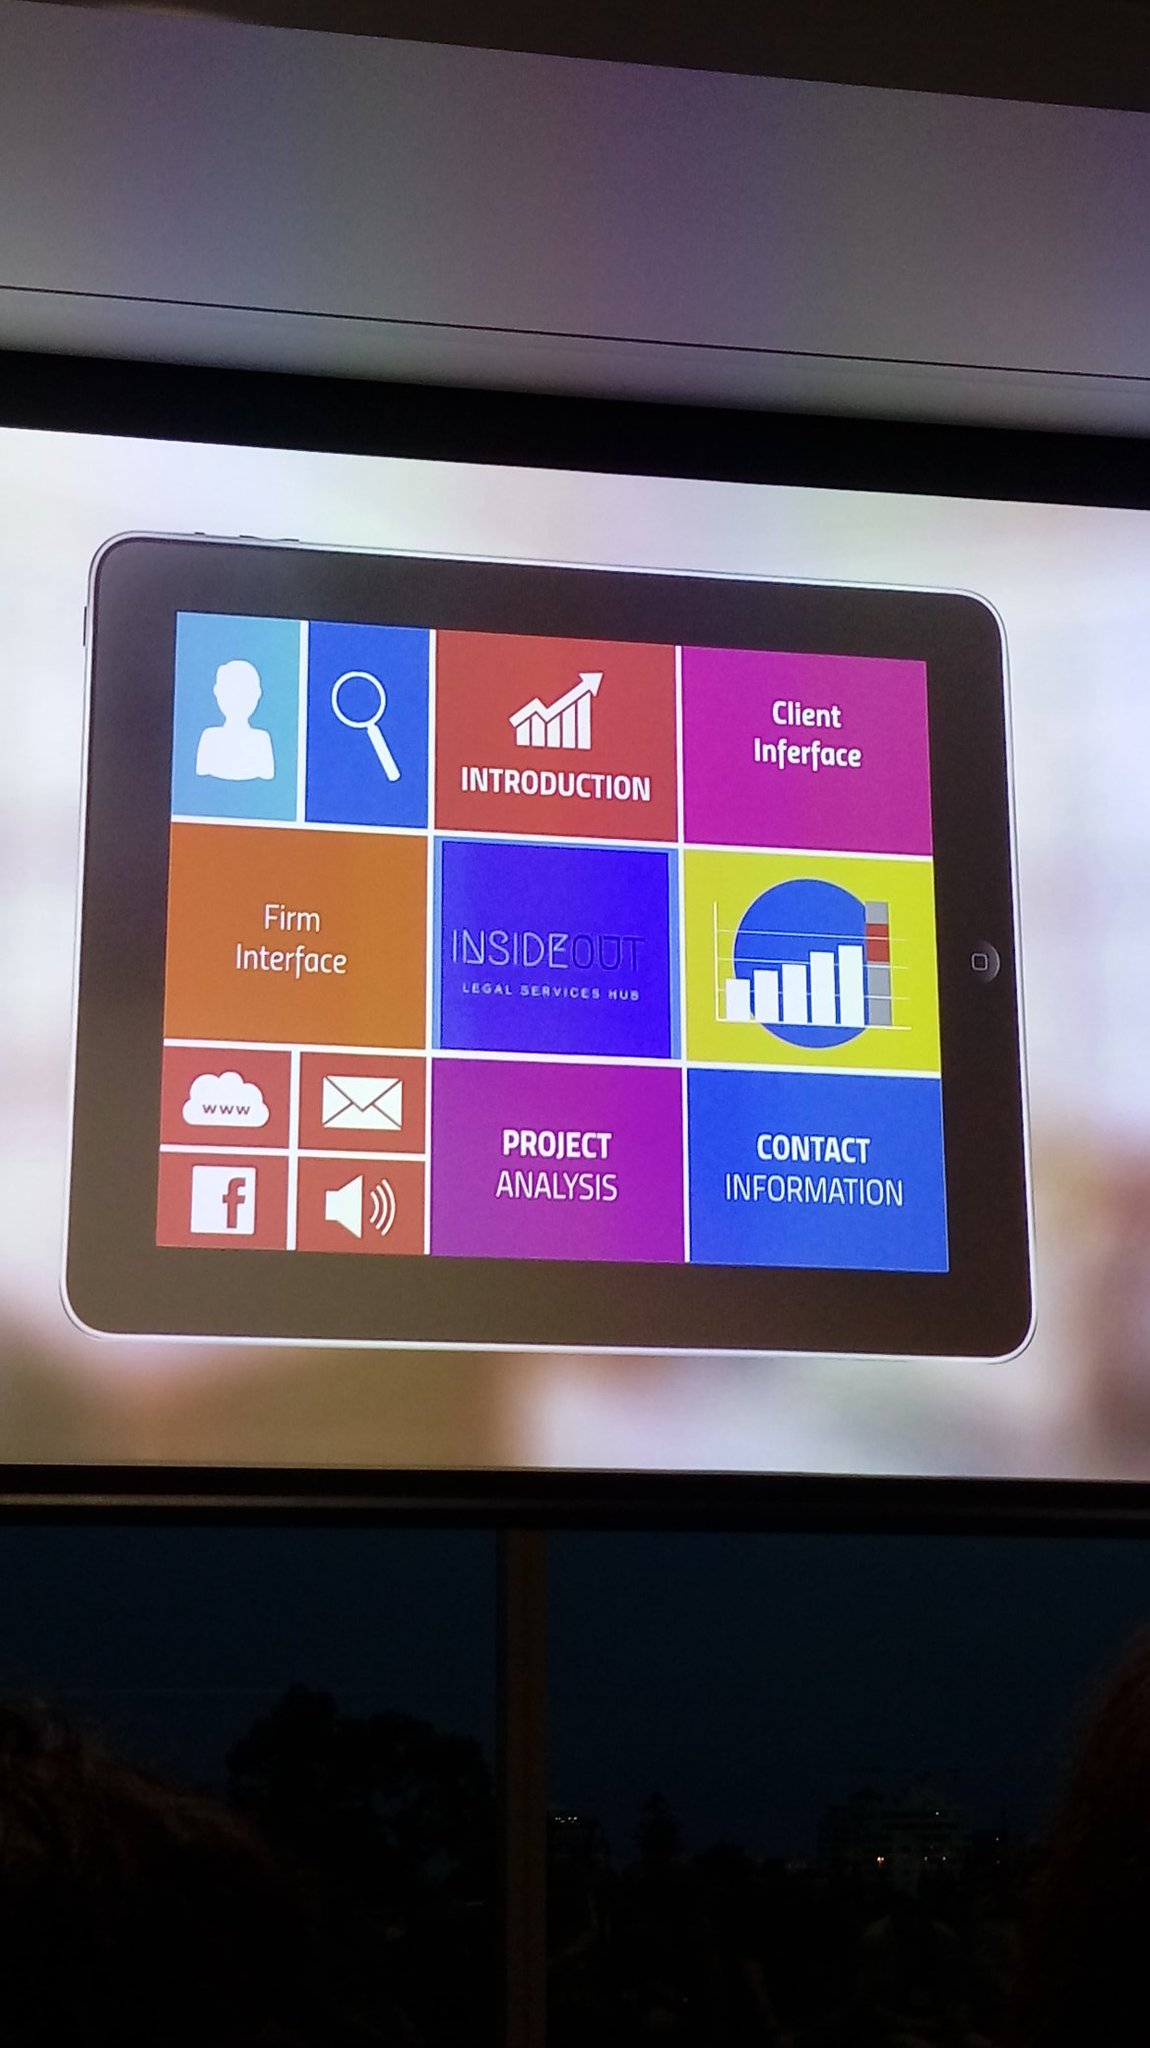 #Insideout at #disruptinglaw the new form of project management with a client interface https://t.co/TUr3fUgaDj